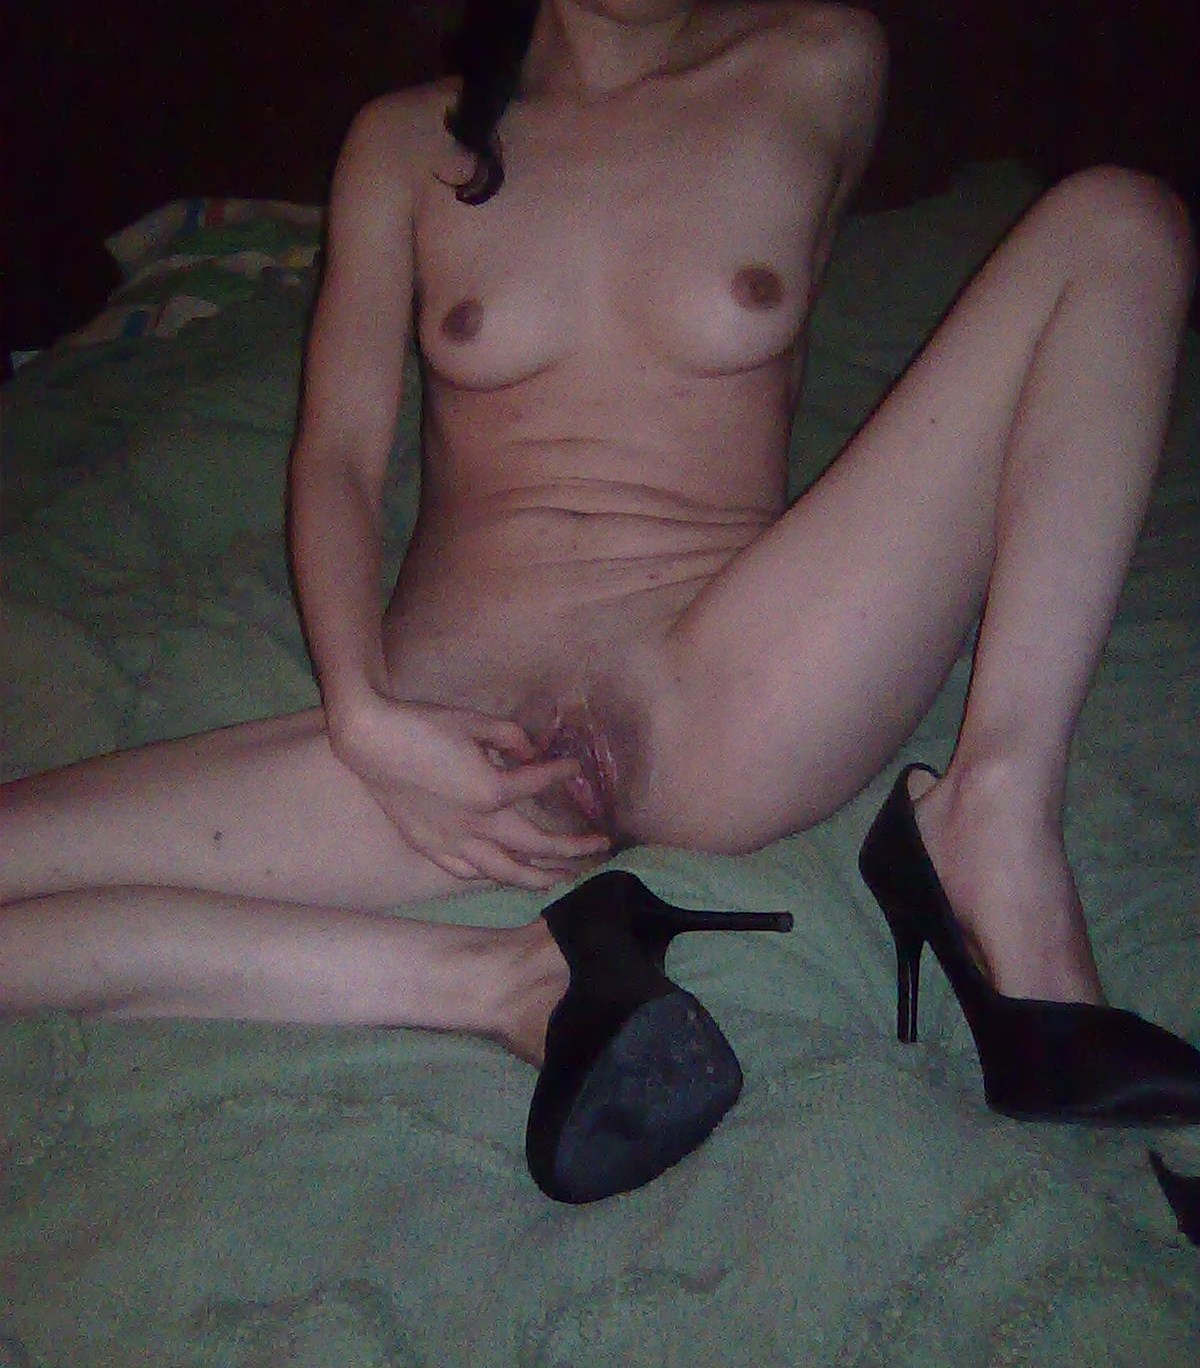 Hot sexy babe bottomless pussy pics